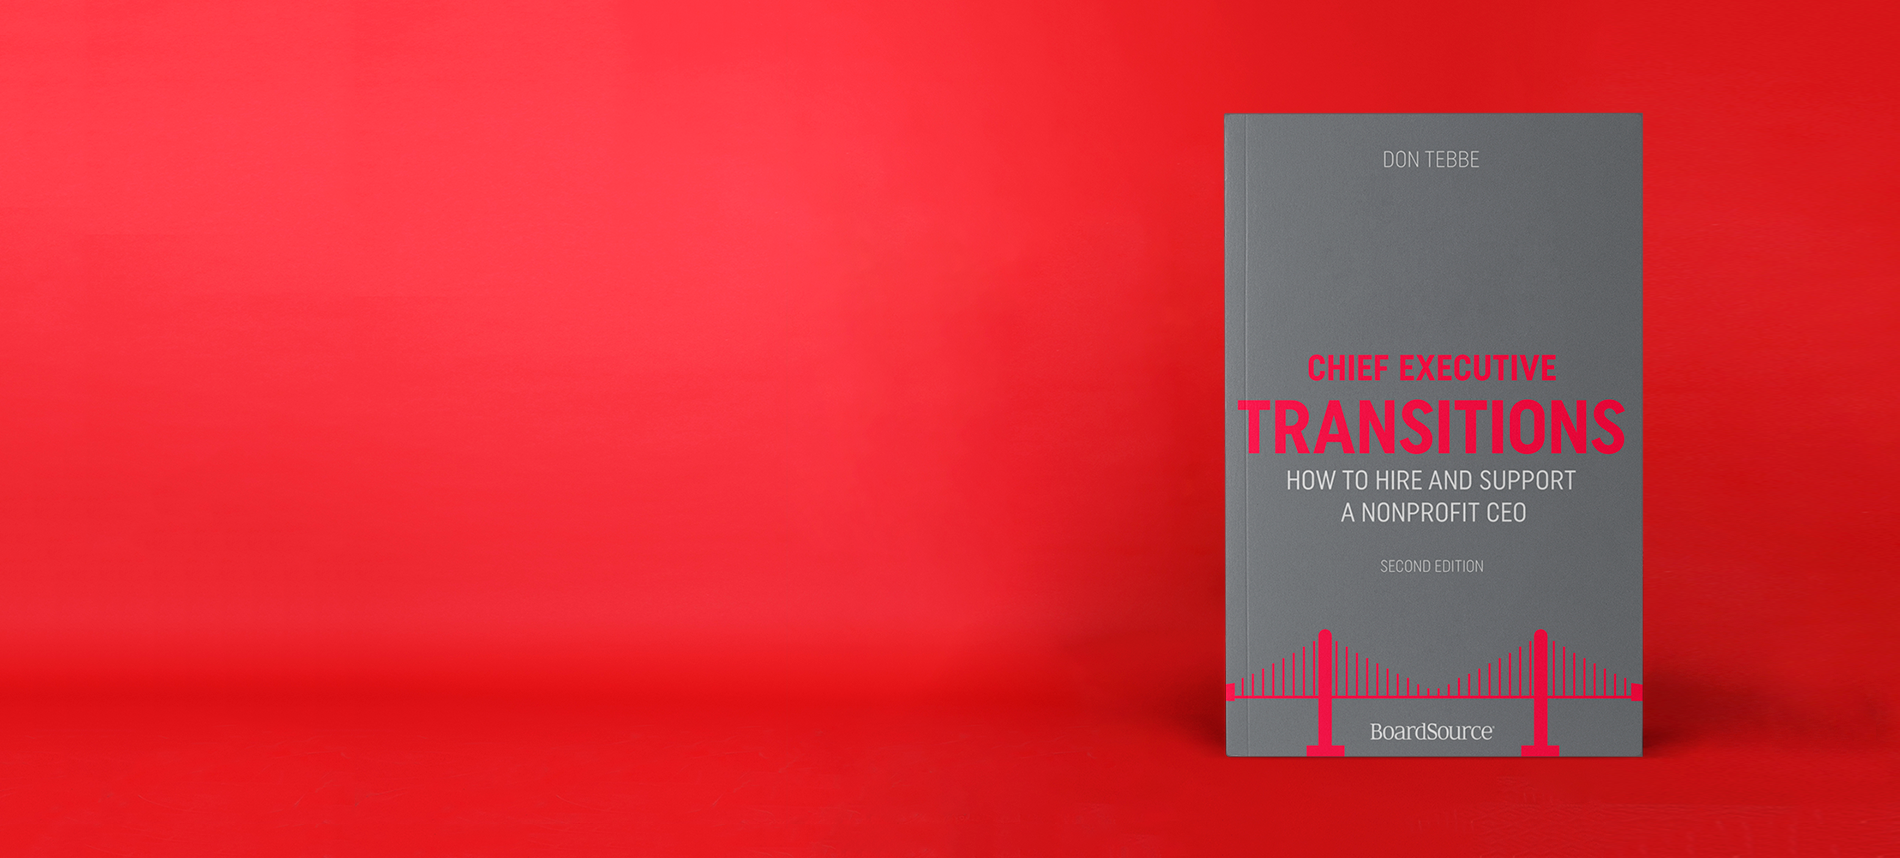 Chief Executive Transitions: How to Hire and Support a Nonprofit CEO - Cover image on red background